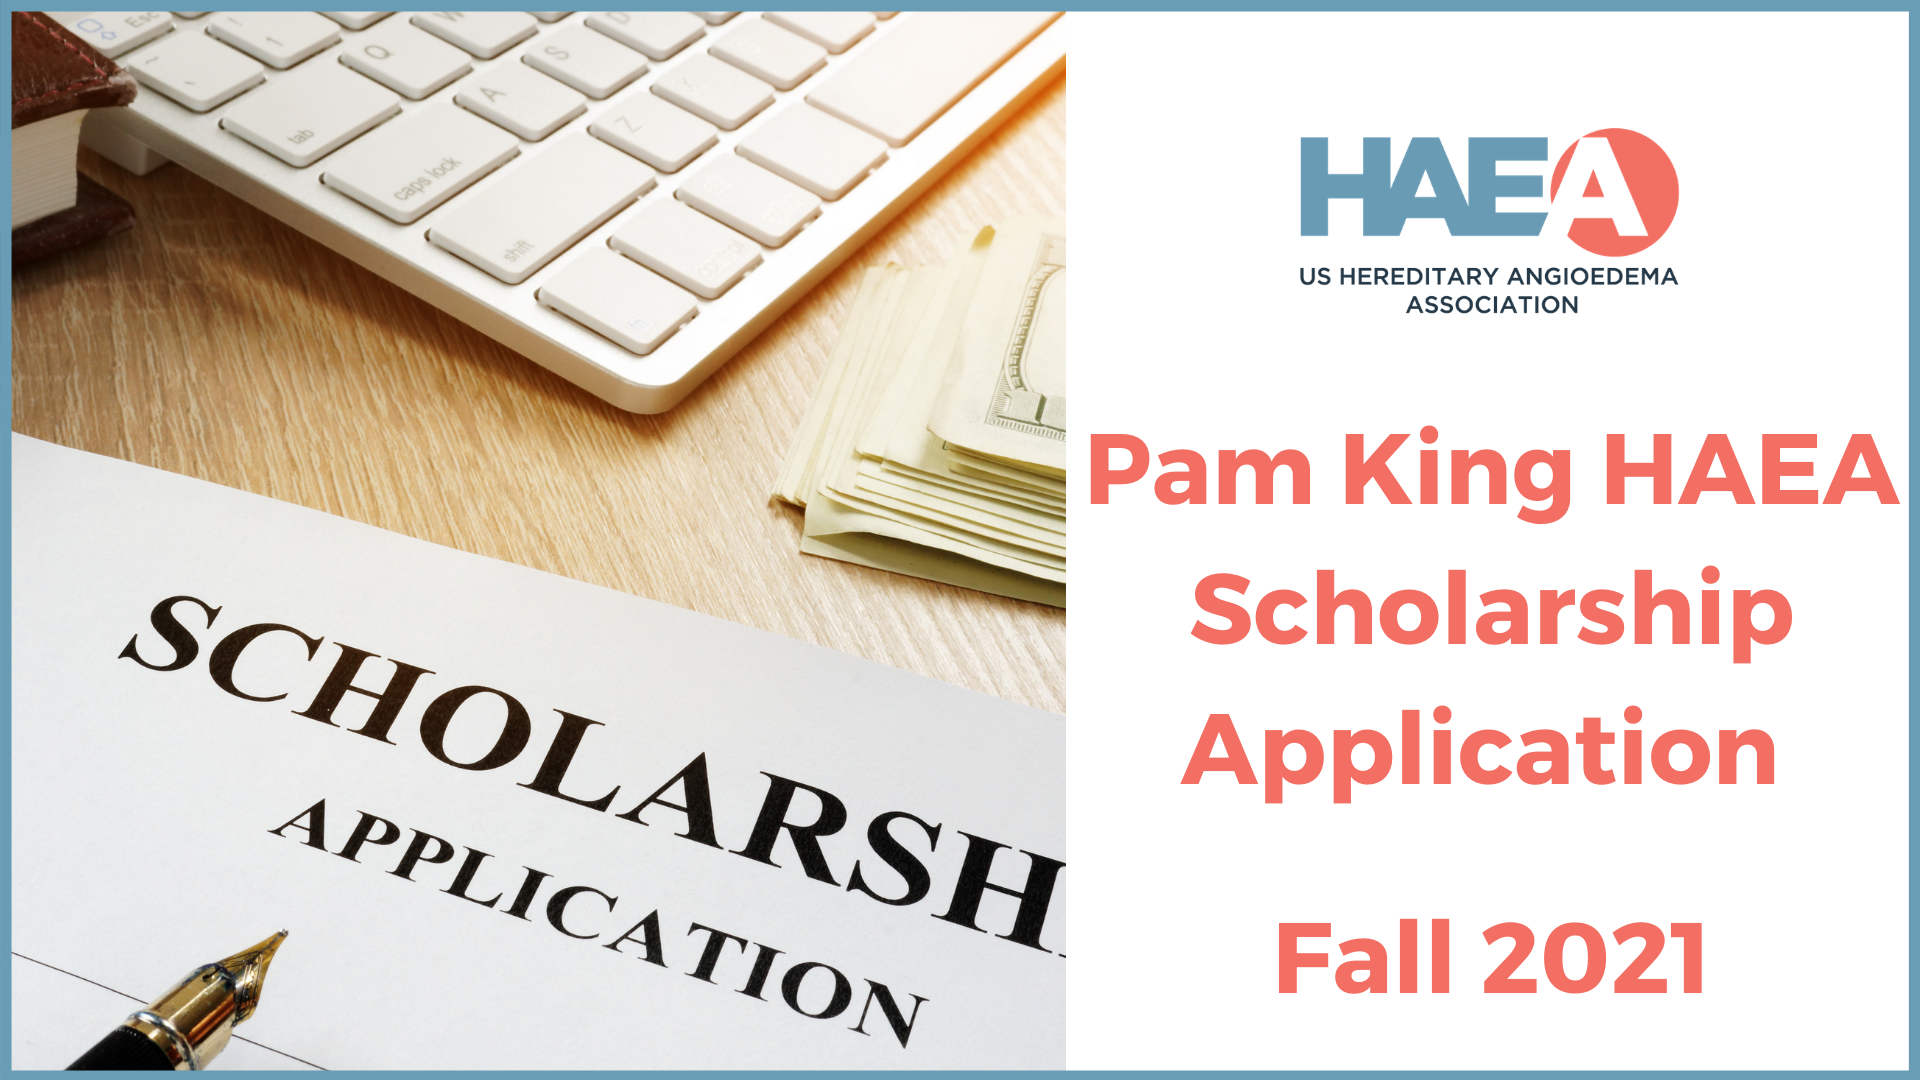 The Pam King HAEA Scholarship Program is NOW Accepting Applications for the Fall 2021 Semester